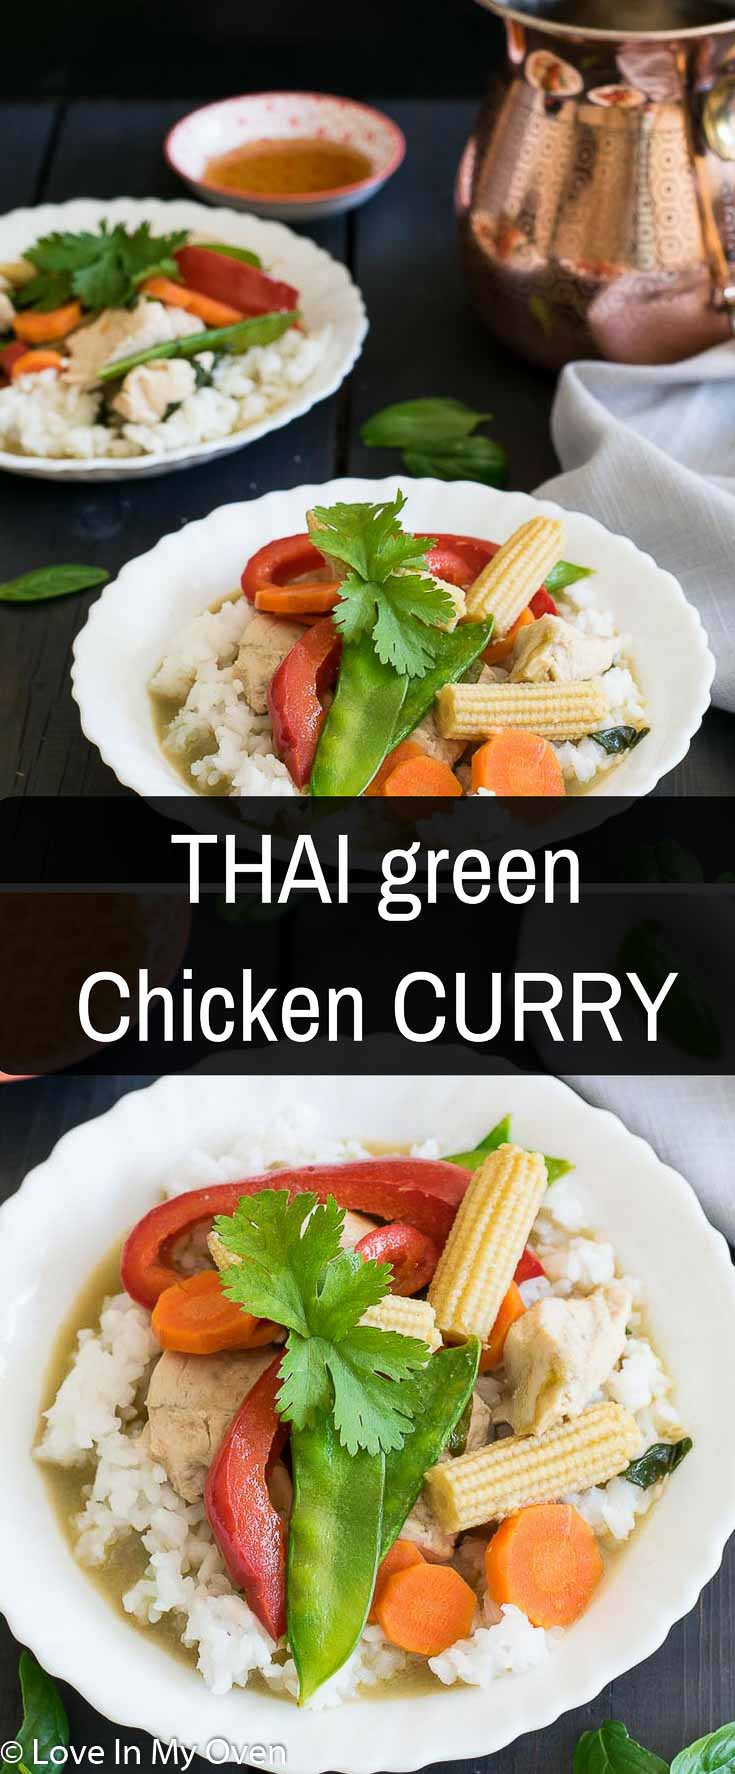 Classic Thai green curry flavors with a hint of sweet basil and served with fresh vegetables and chicken.